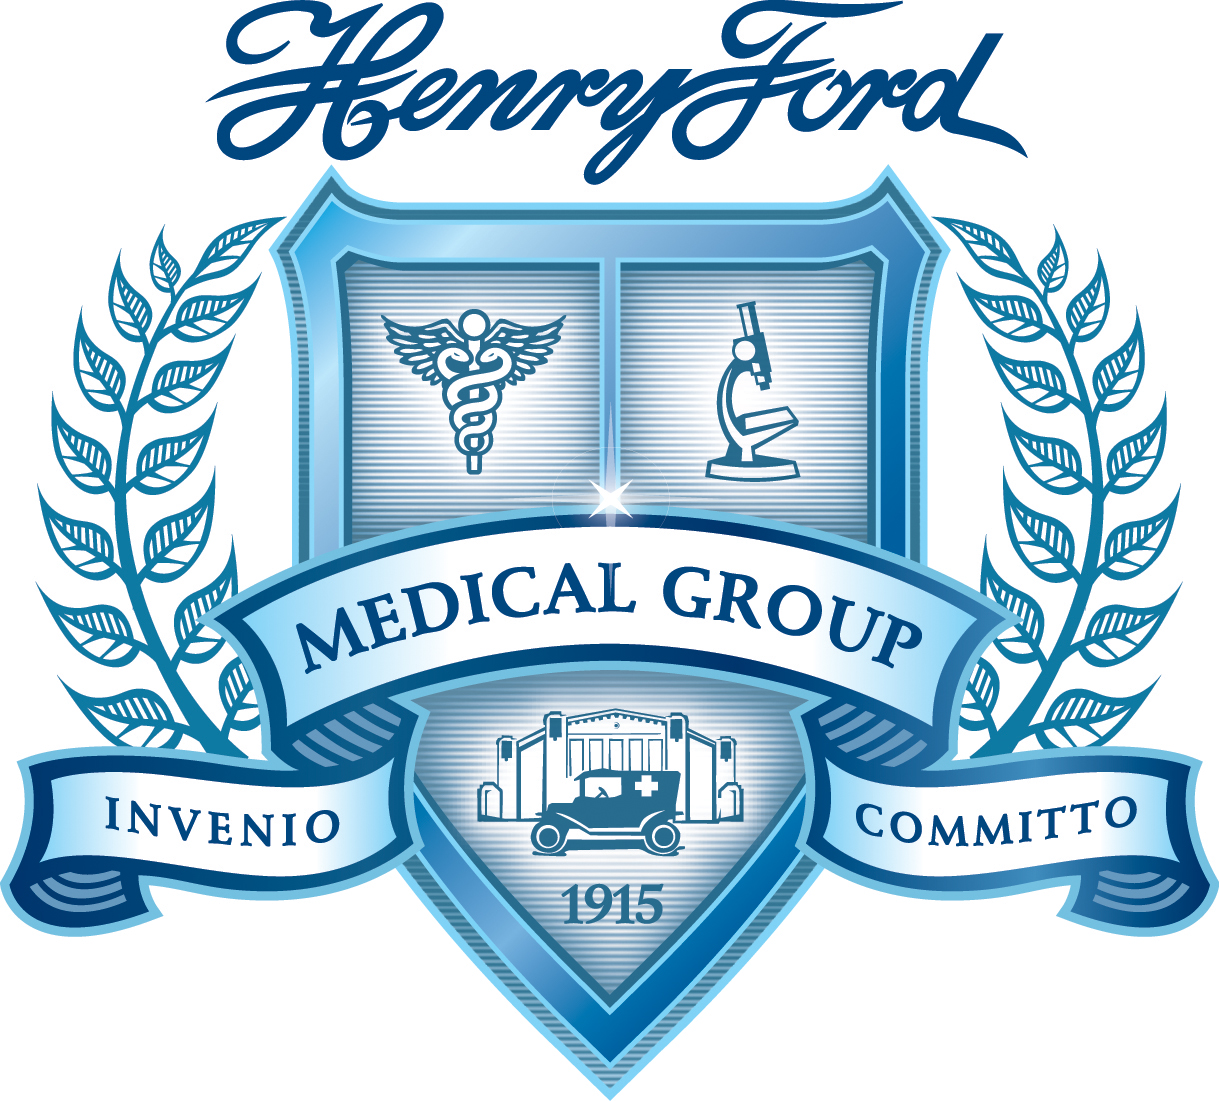 behind the scenes doc in the d henry ford medical group insignia